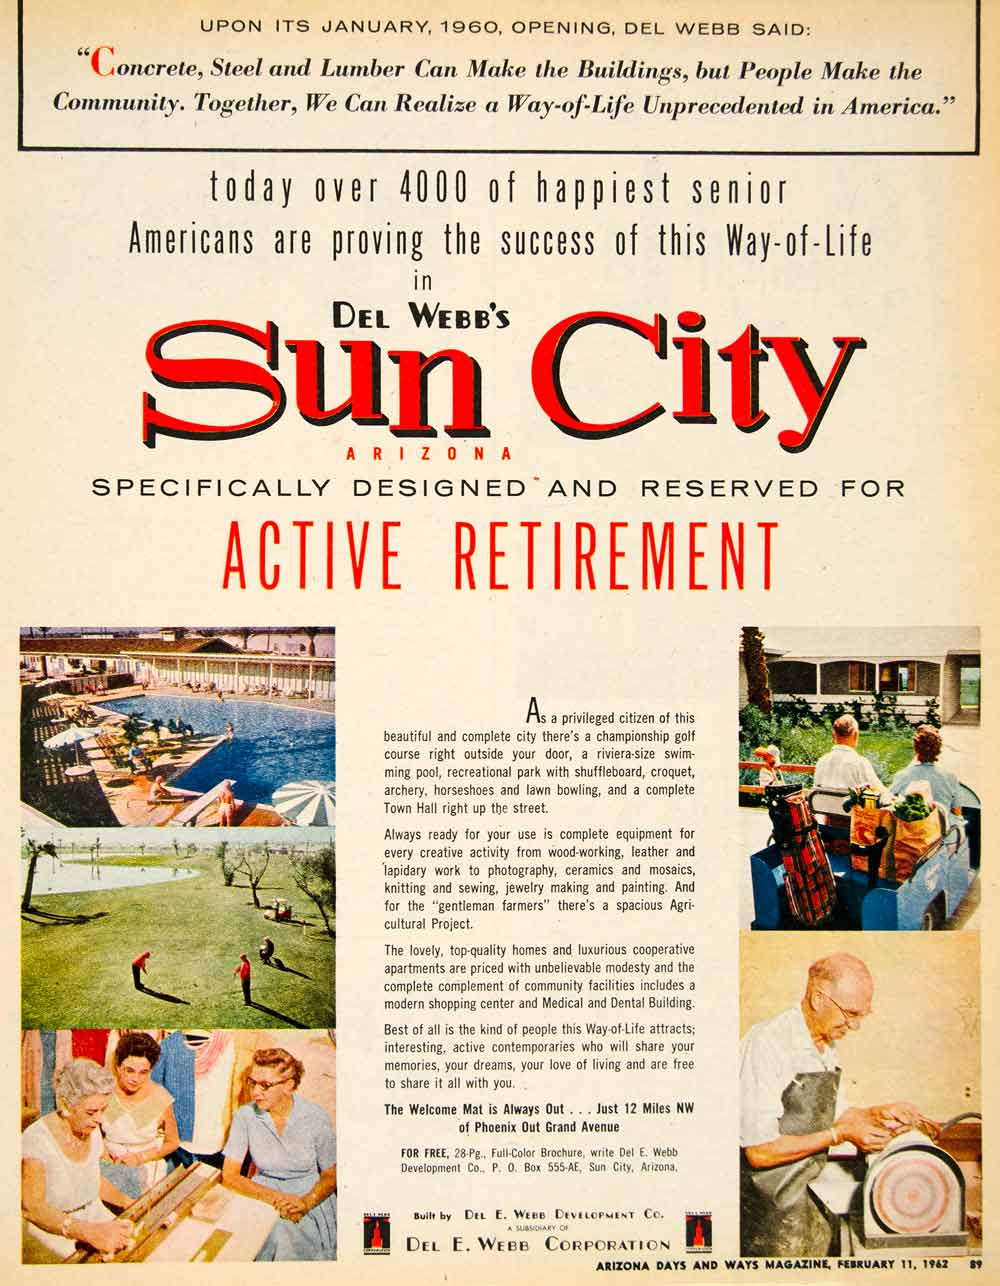 1962 Ad Sun City Del E Webb Development Retirement Concrete Steel Lumber XGSC4